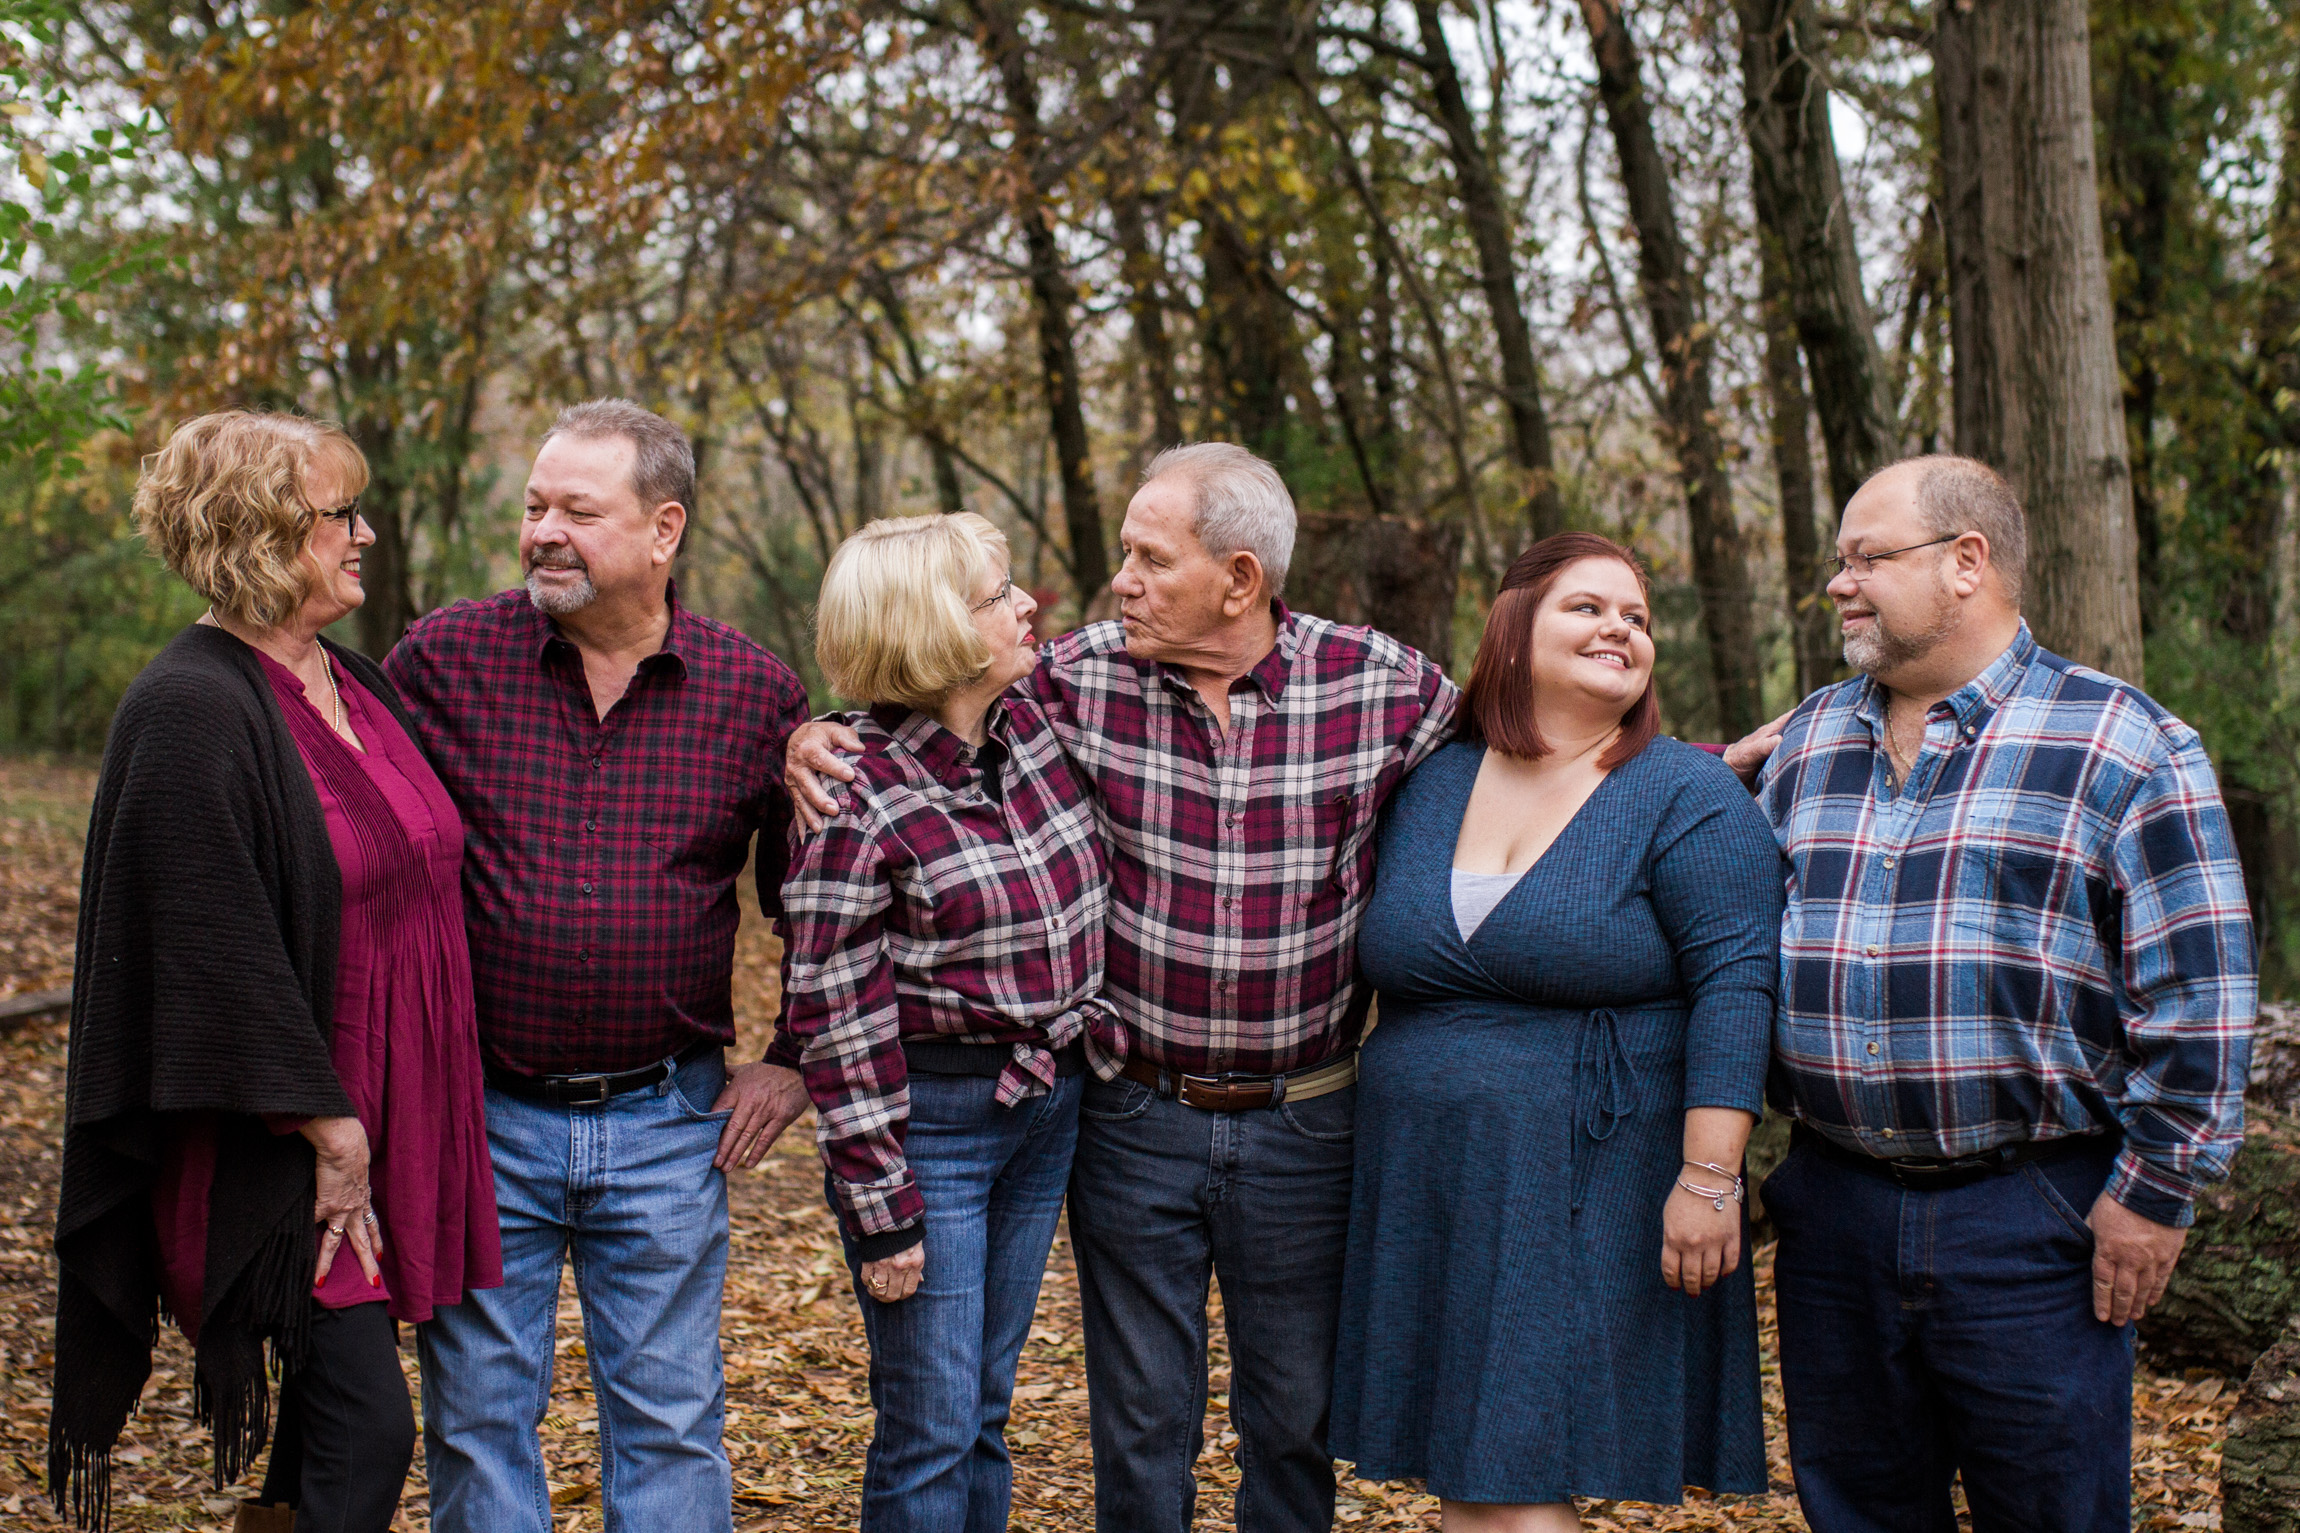 Kansas City lifestyle photographer, Kansas City family photographer, extended family session, fall family photos in the woods